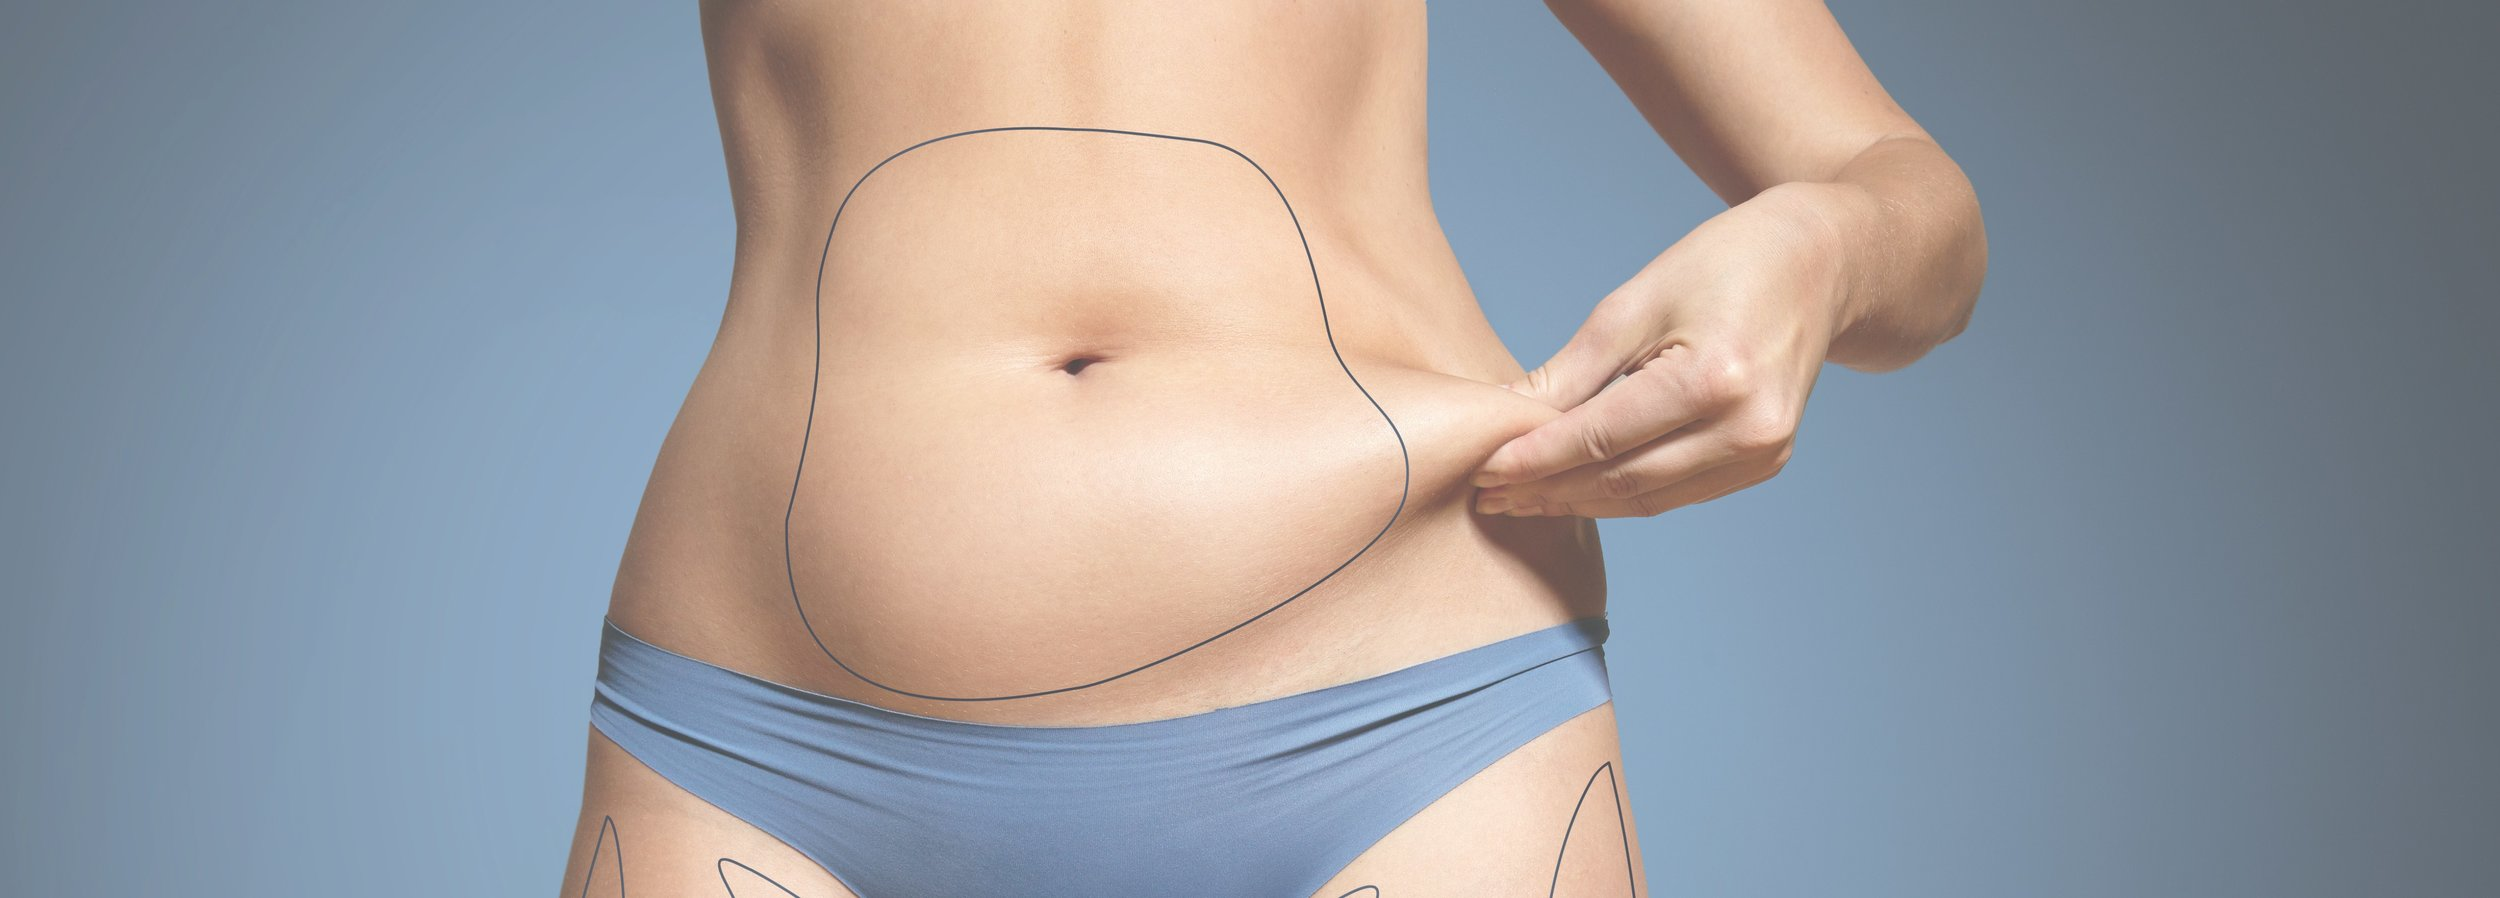 How to fix Coolsculpting dents, shelves, and other uneven side effects